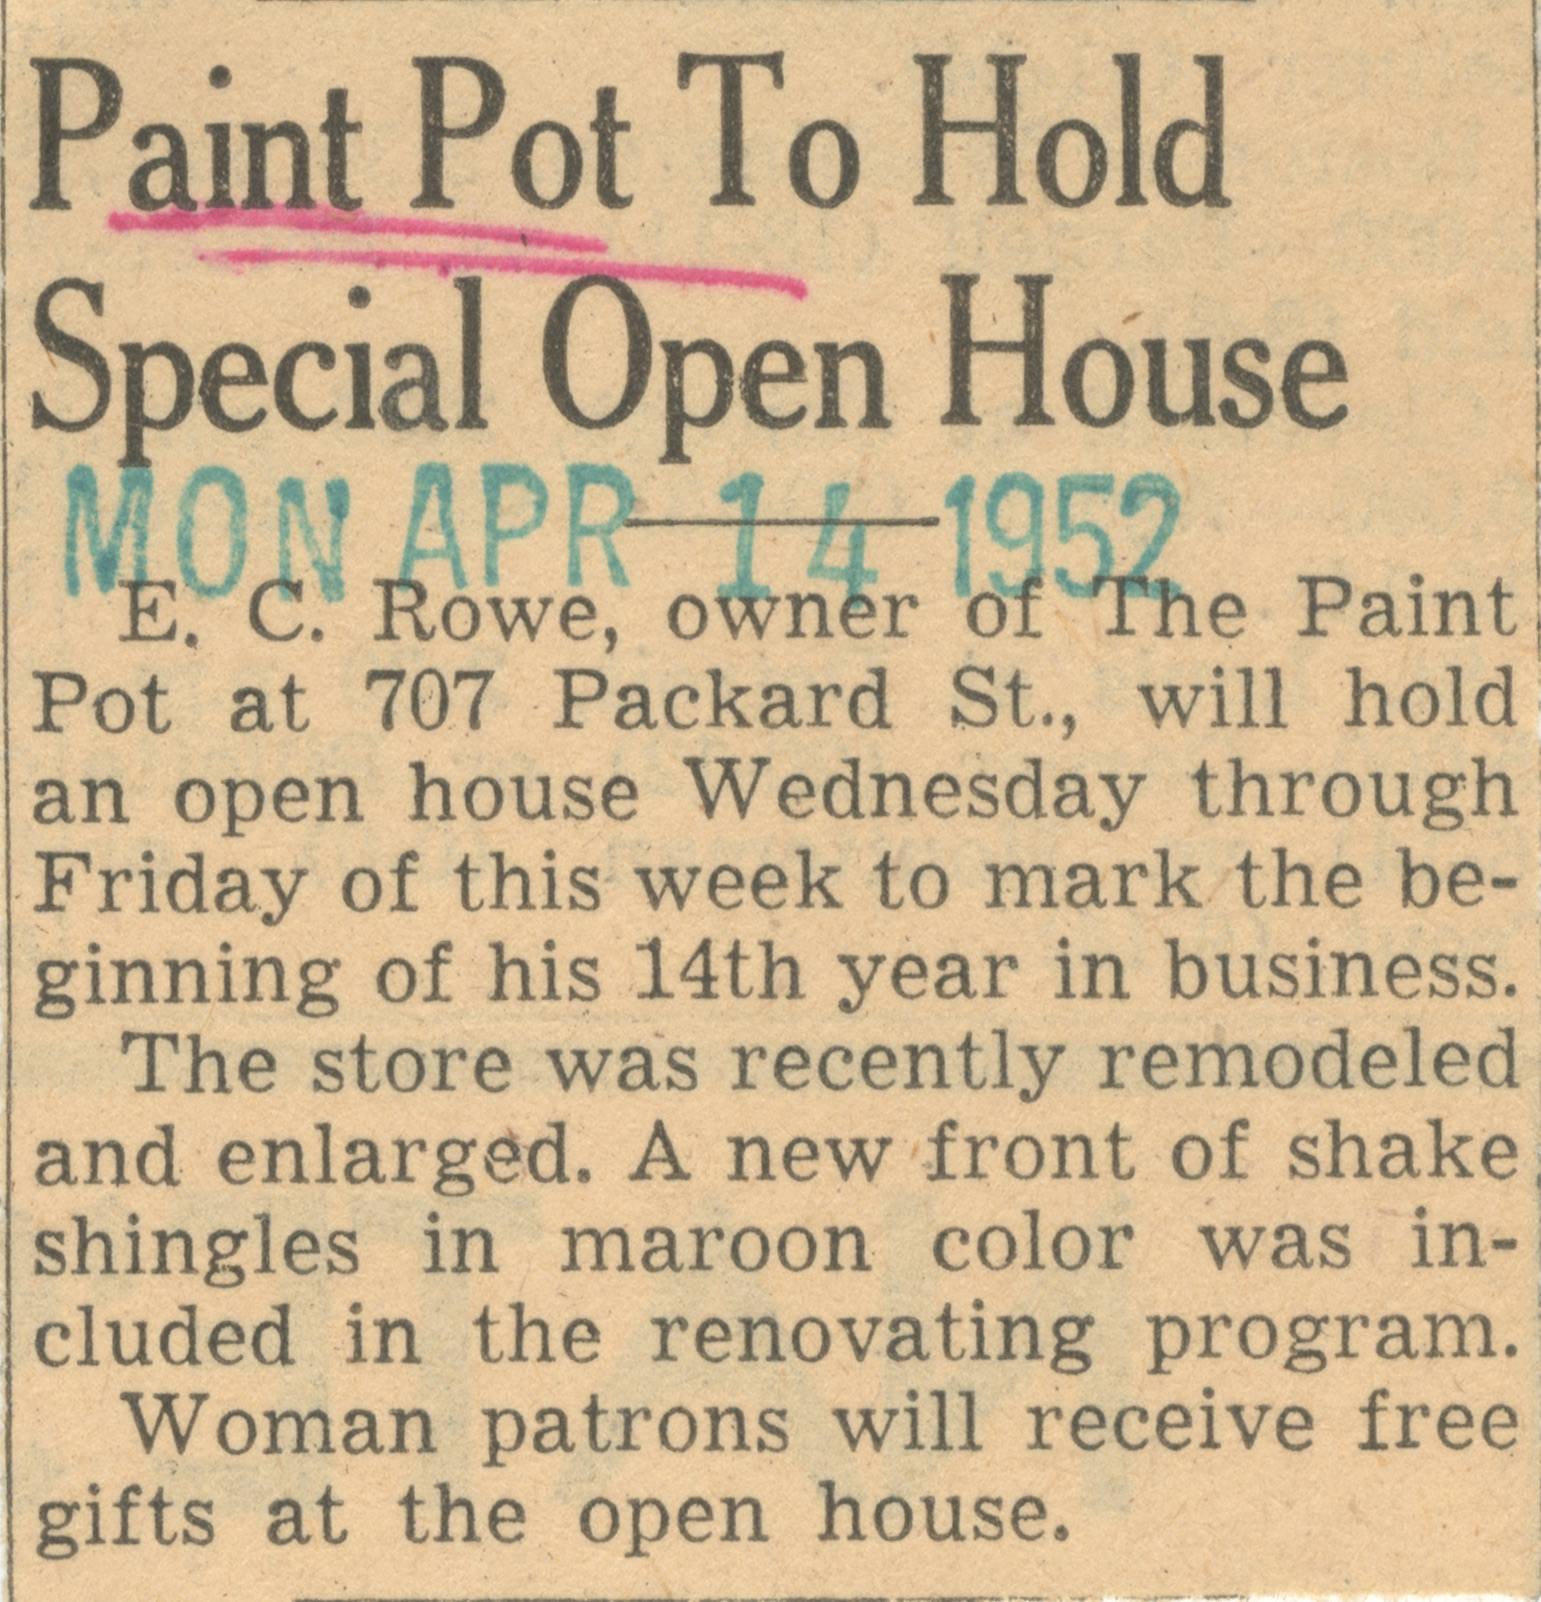 Paint Pot To Hold Special Open House image